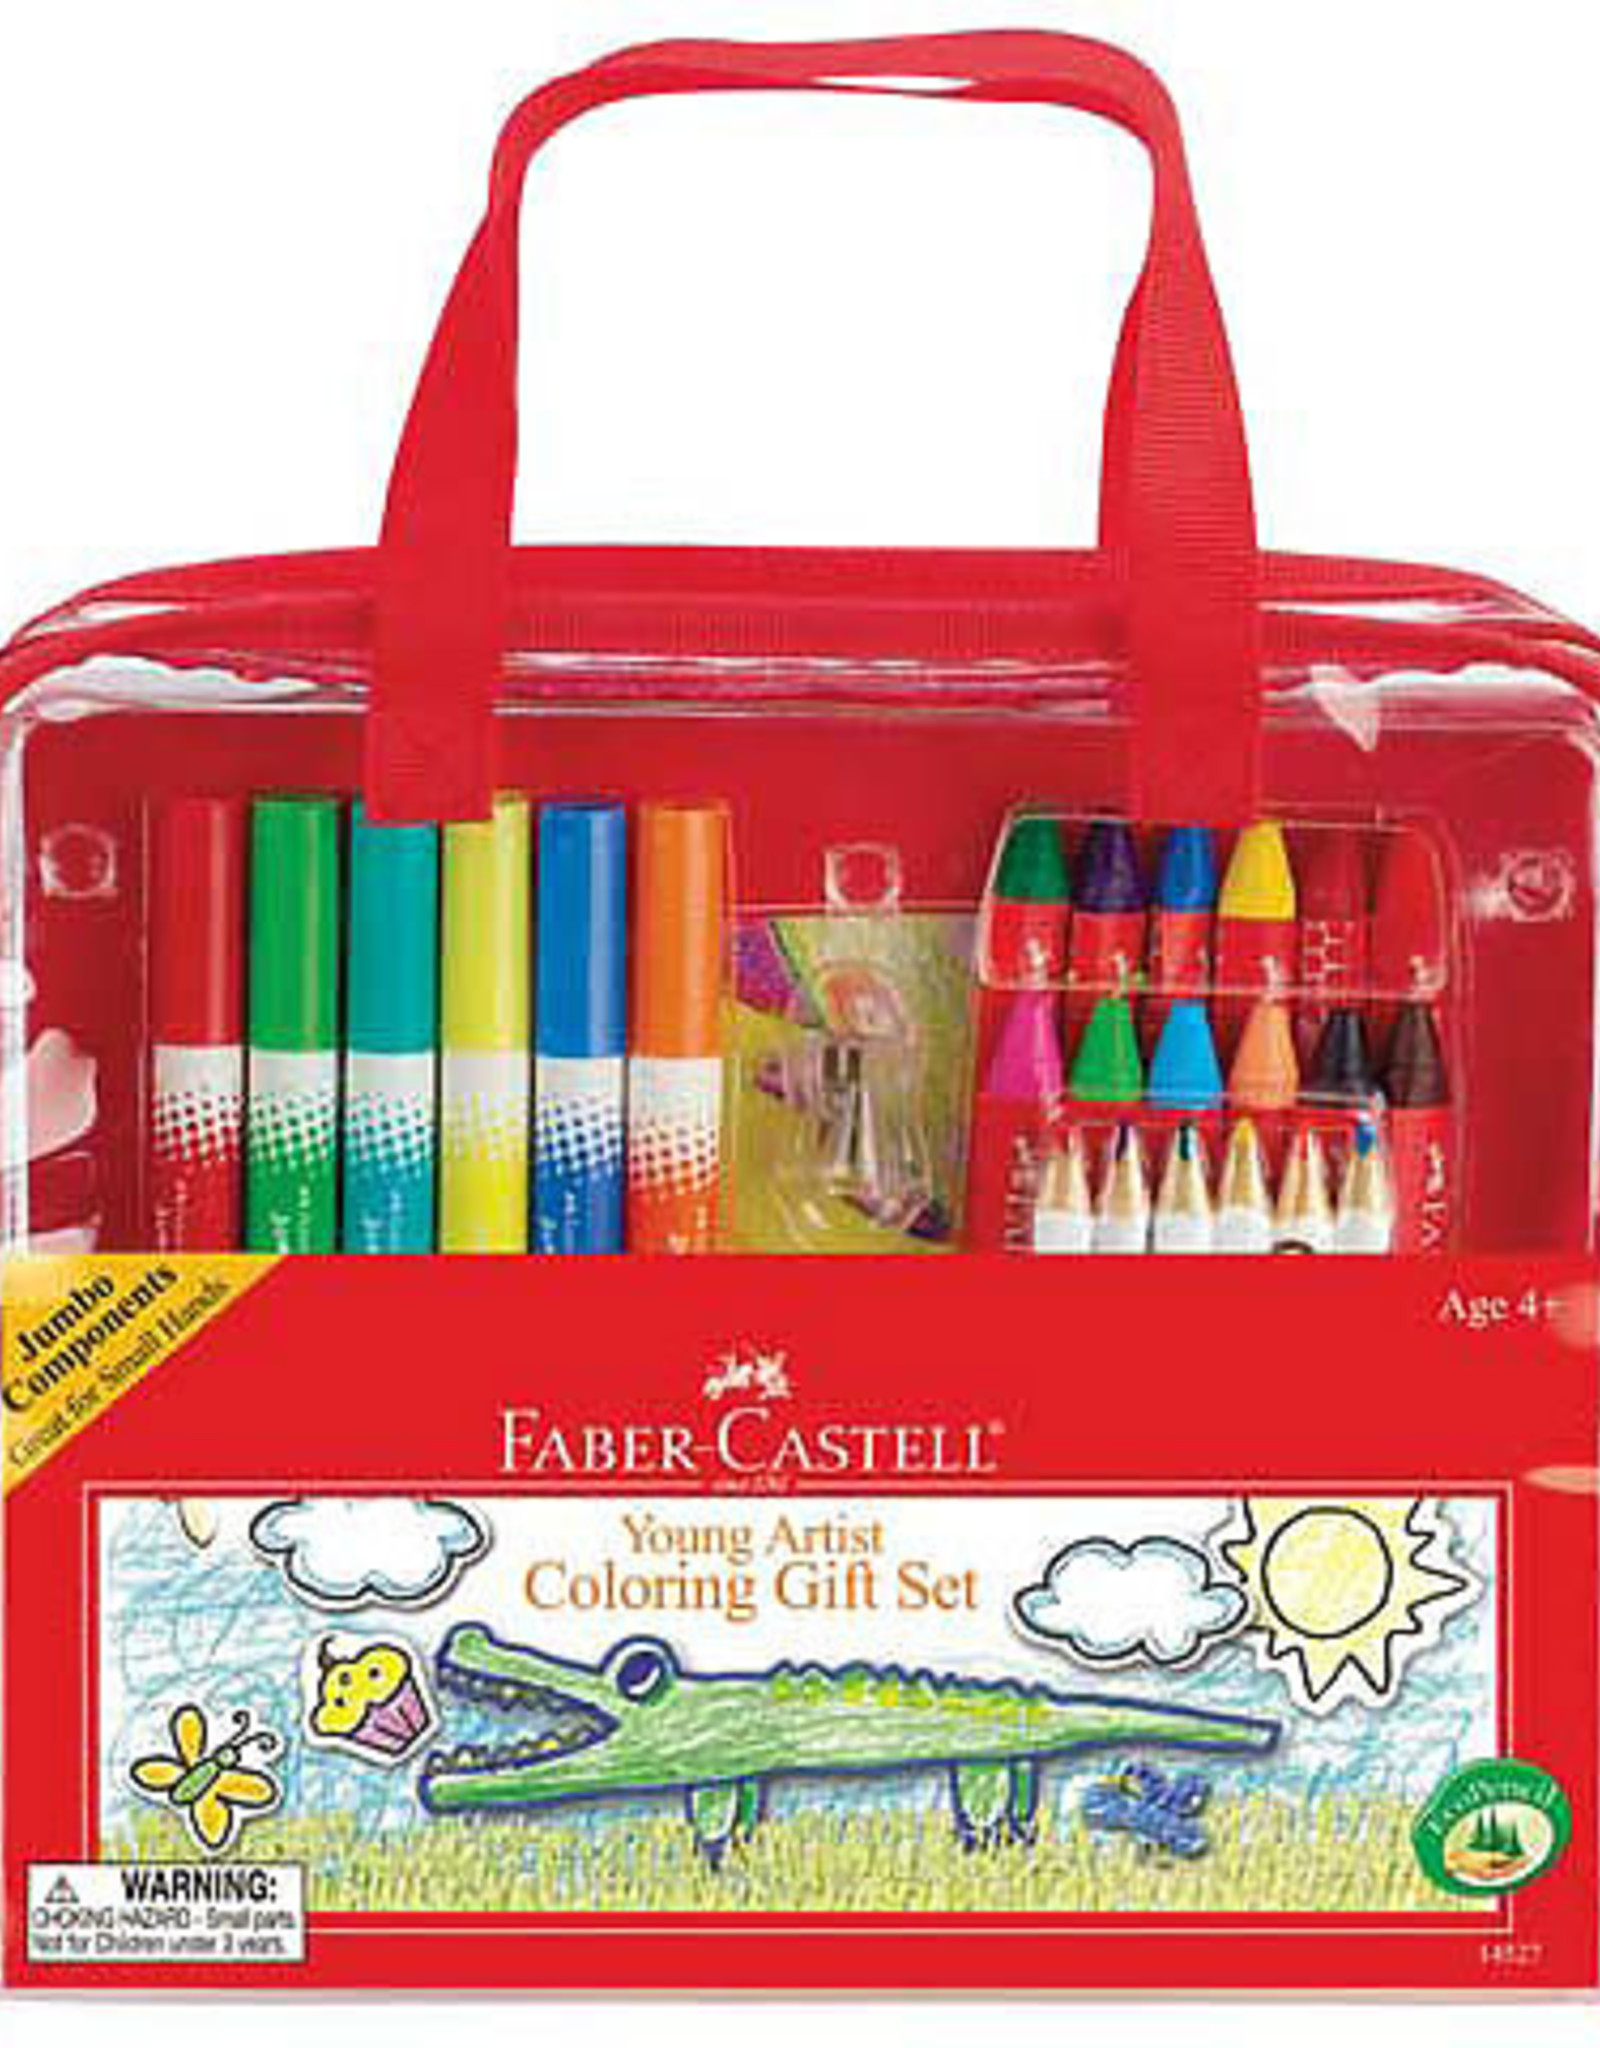 Young Artist Coloring Gift Set